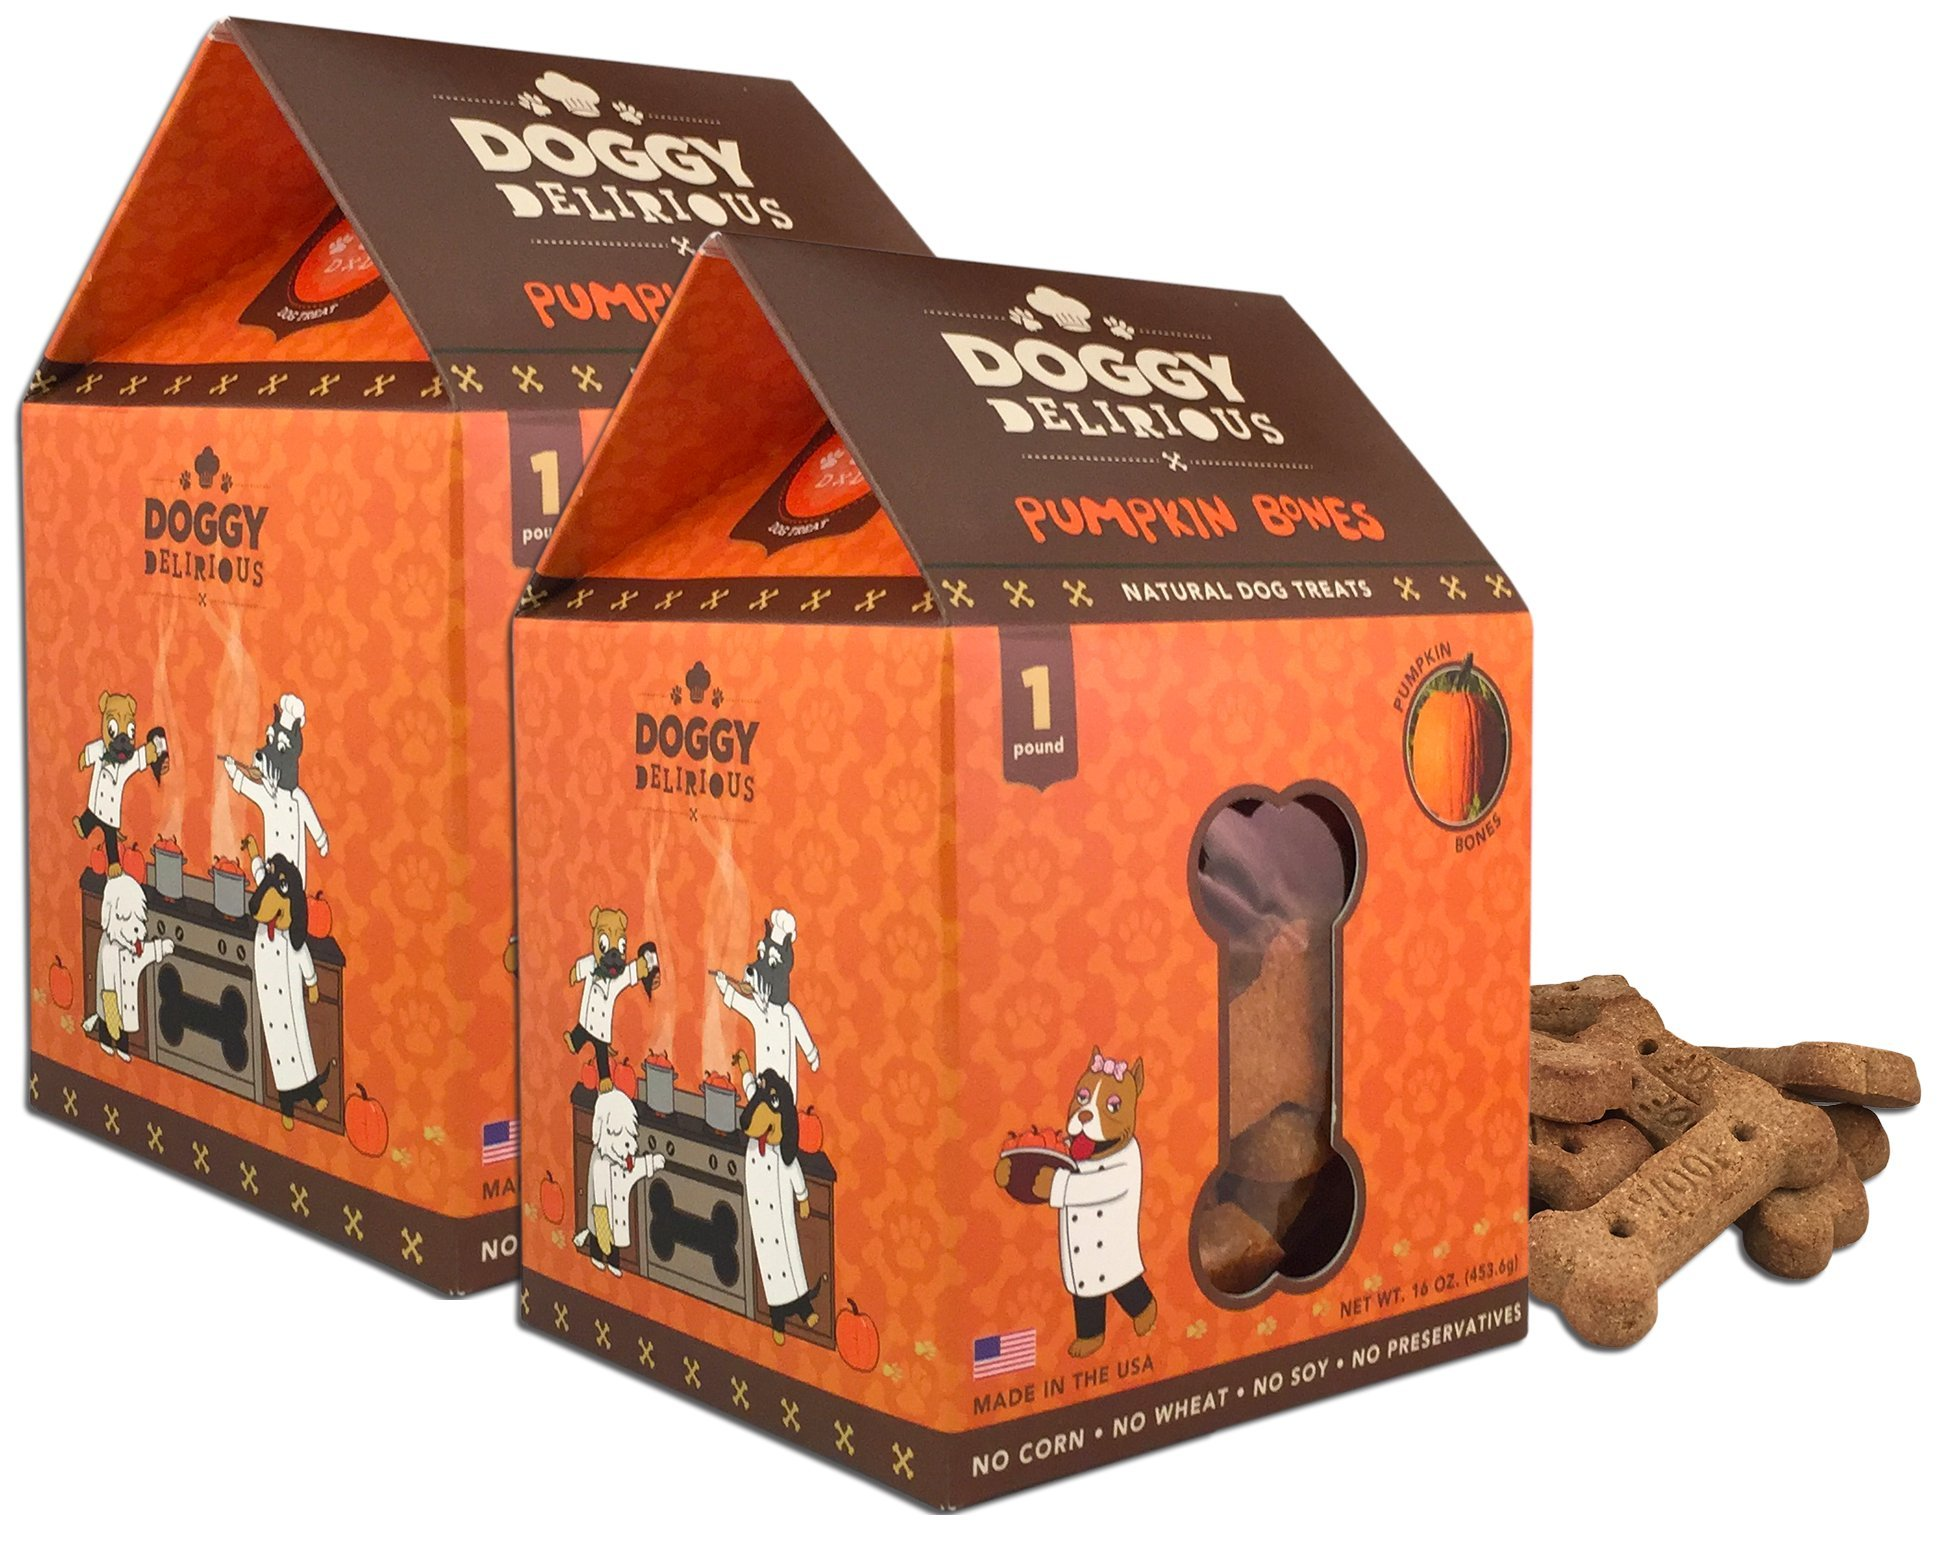 Wet Noses Doggy Delirious All Natural Dog Treats, Made in USA, 100% USDA Certified Organic, Non-GMO Project Verified, 14 Oz Box, Pumpkin Flavor, 2-Pack